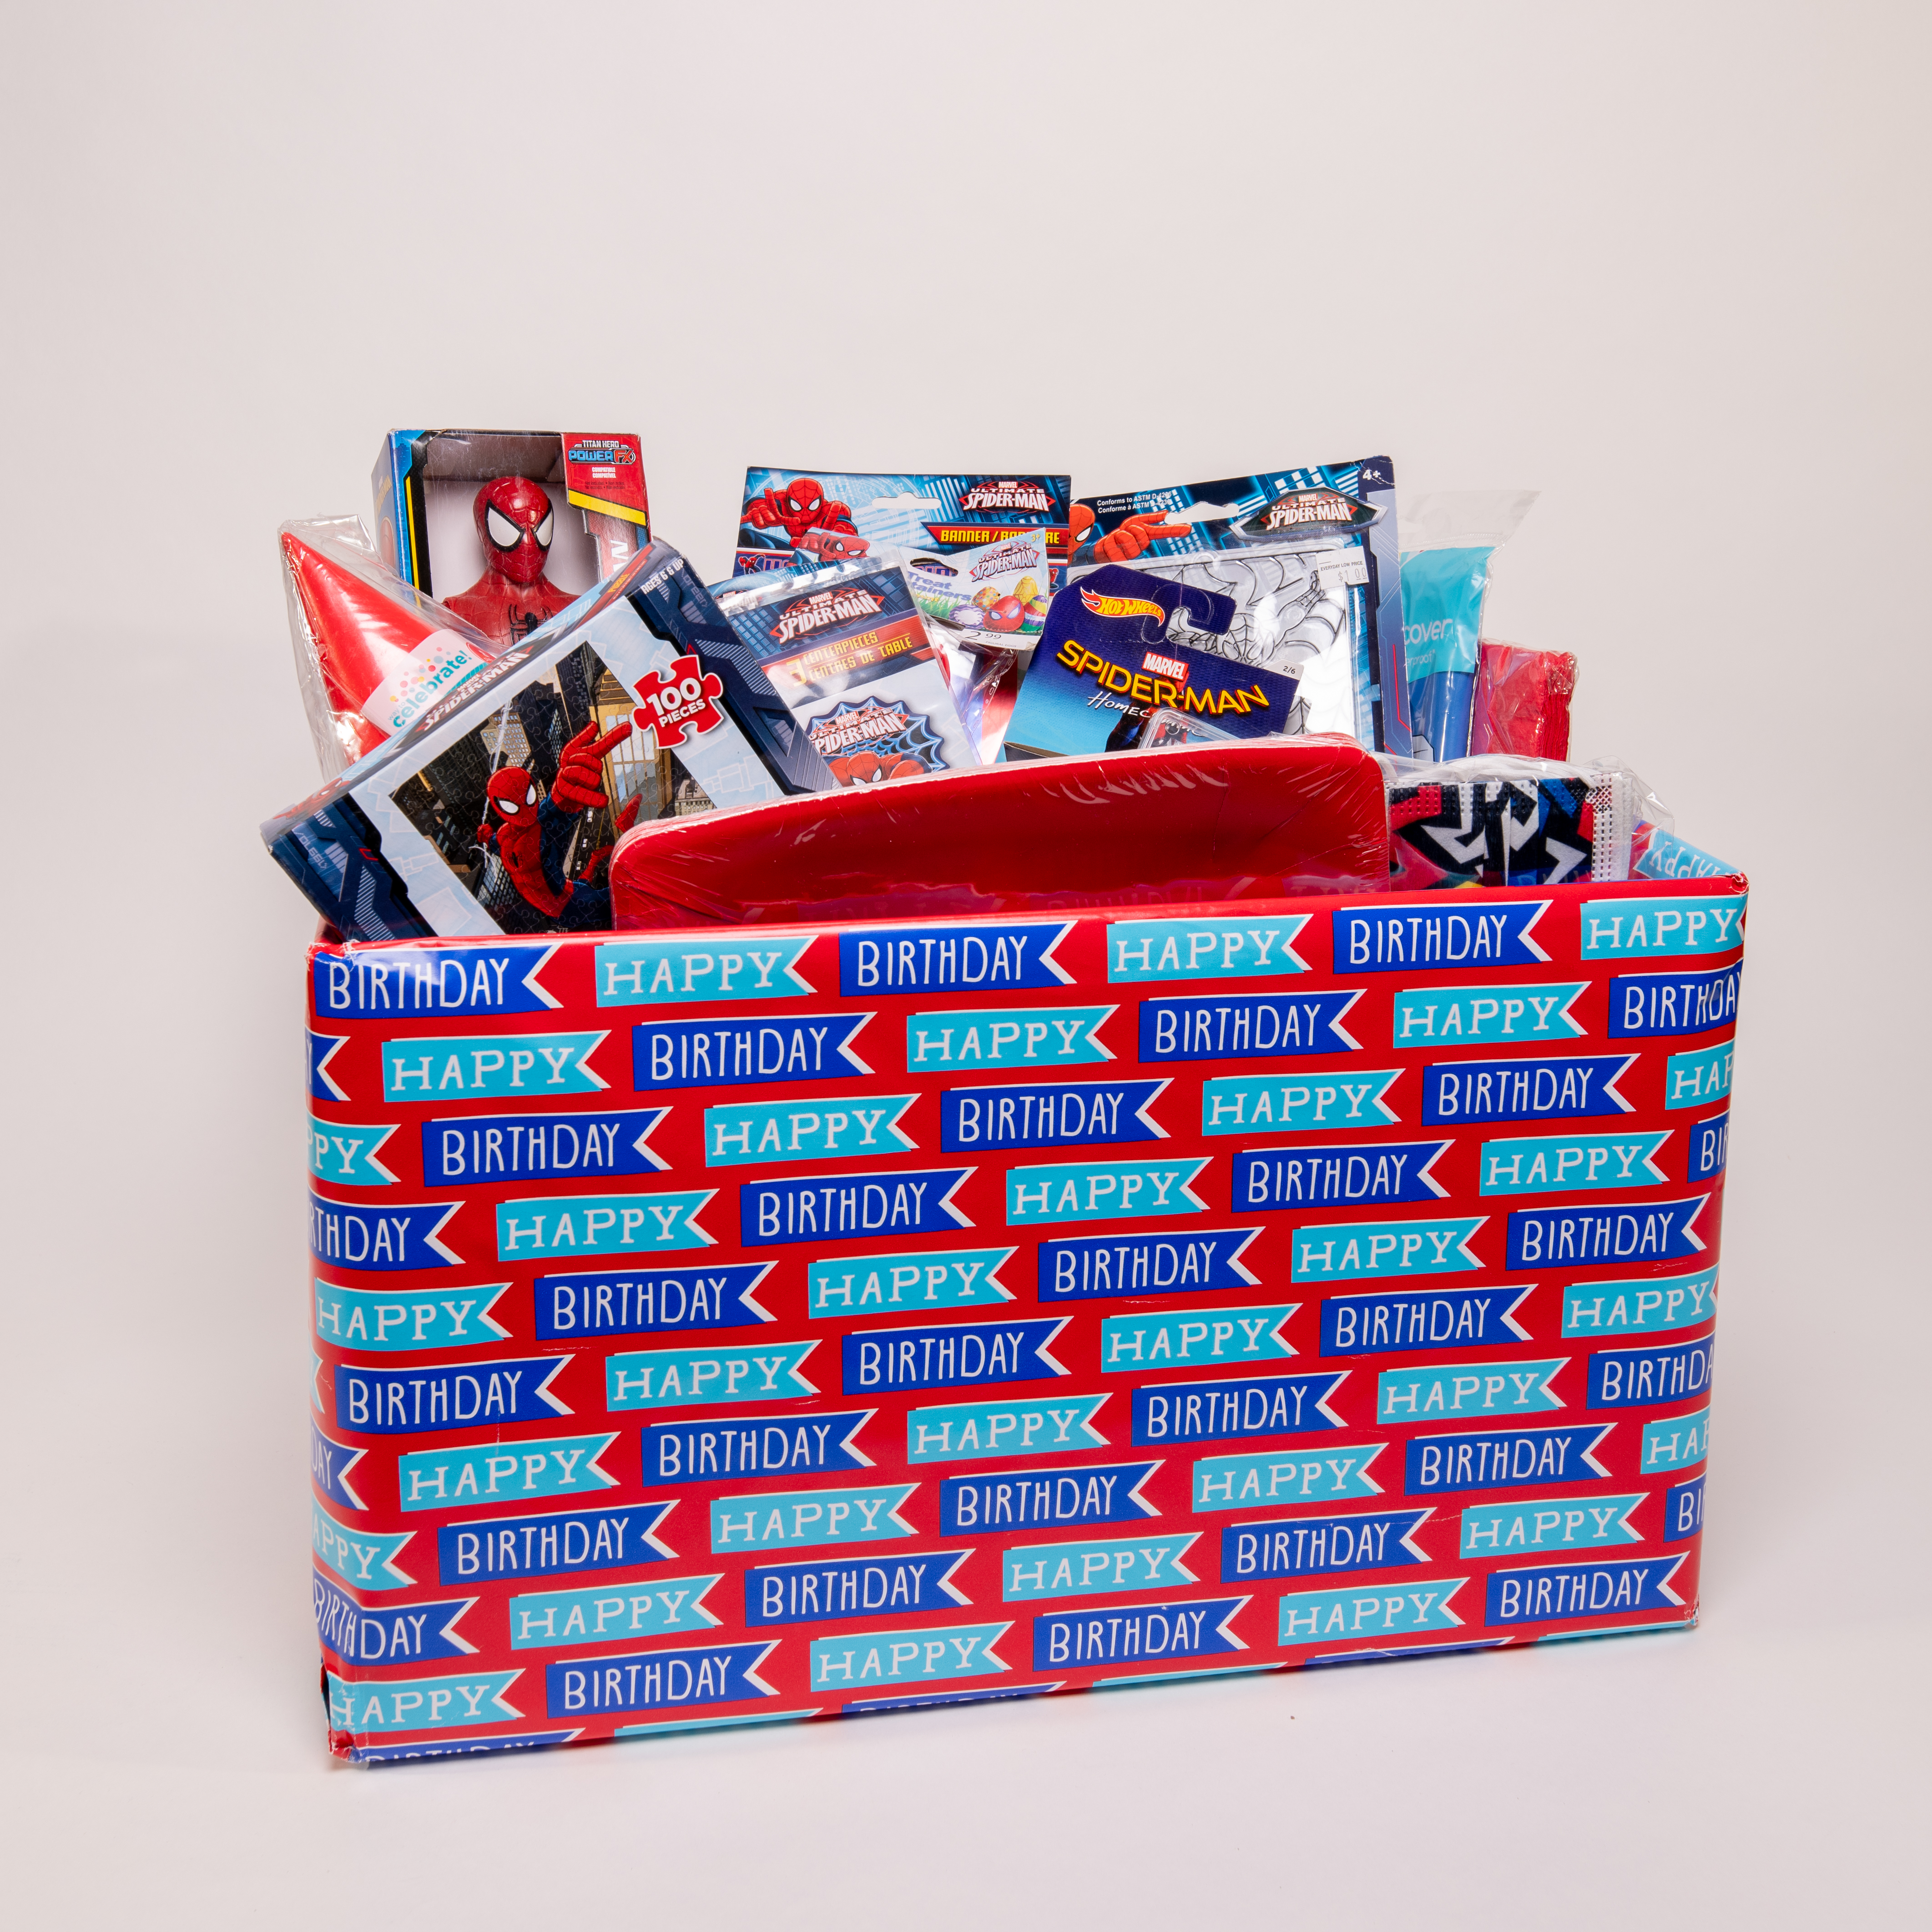 """A staged photoshoot image of a """"birthday box"""" package, including Spiderman action figure and toys"""